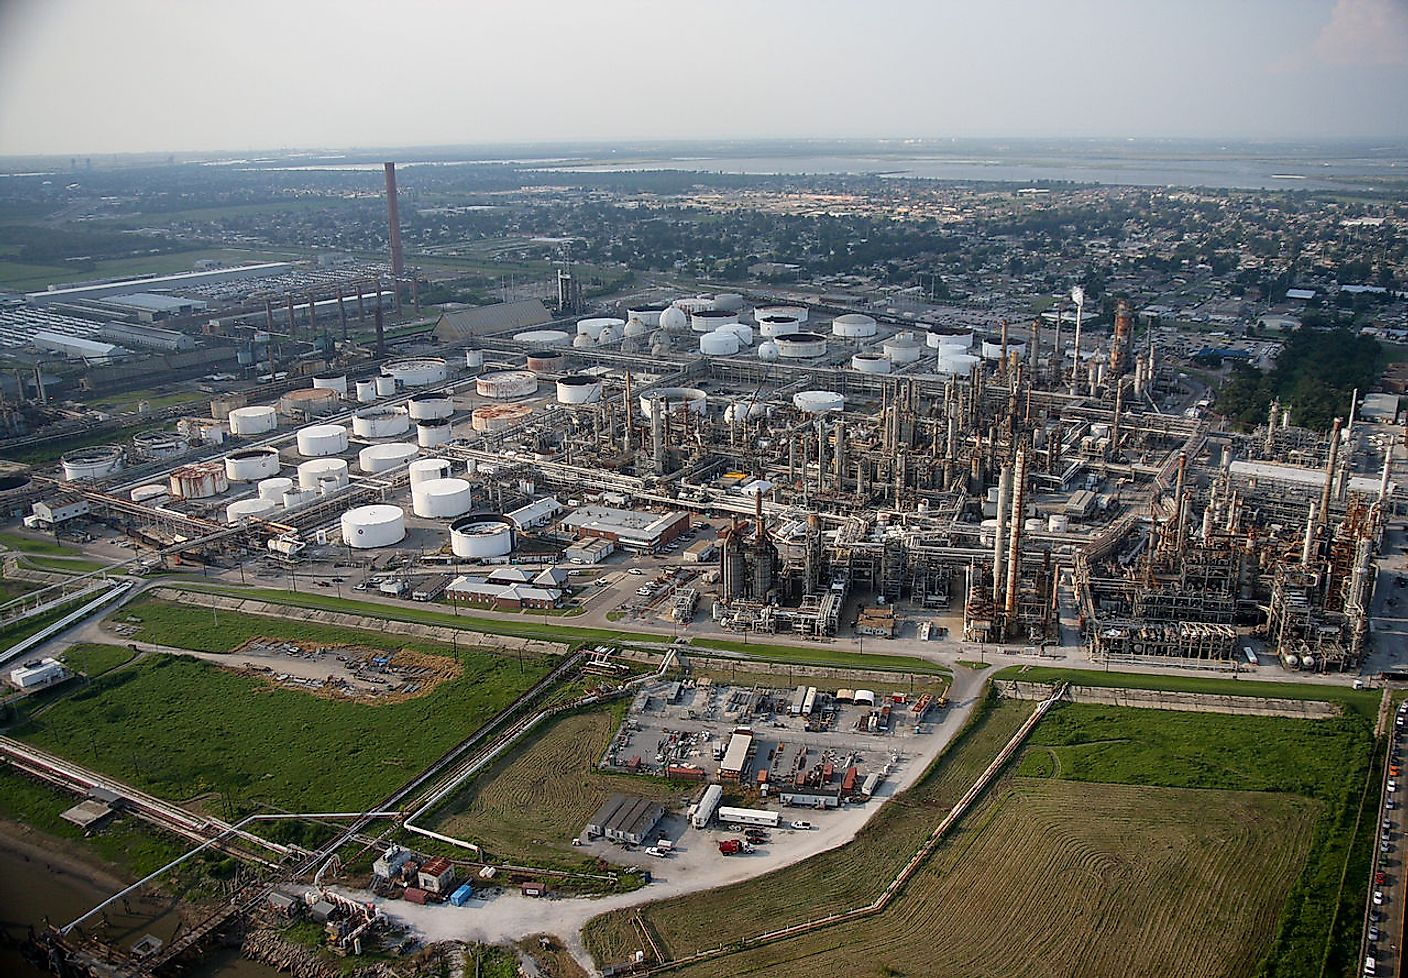 Aerial view of a Louisiana oil refinery. Image credit: Jacinta Quesada/Wikimedia.org